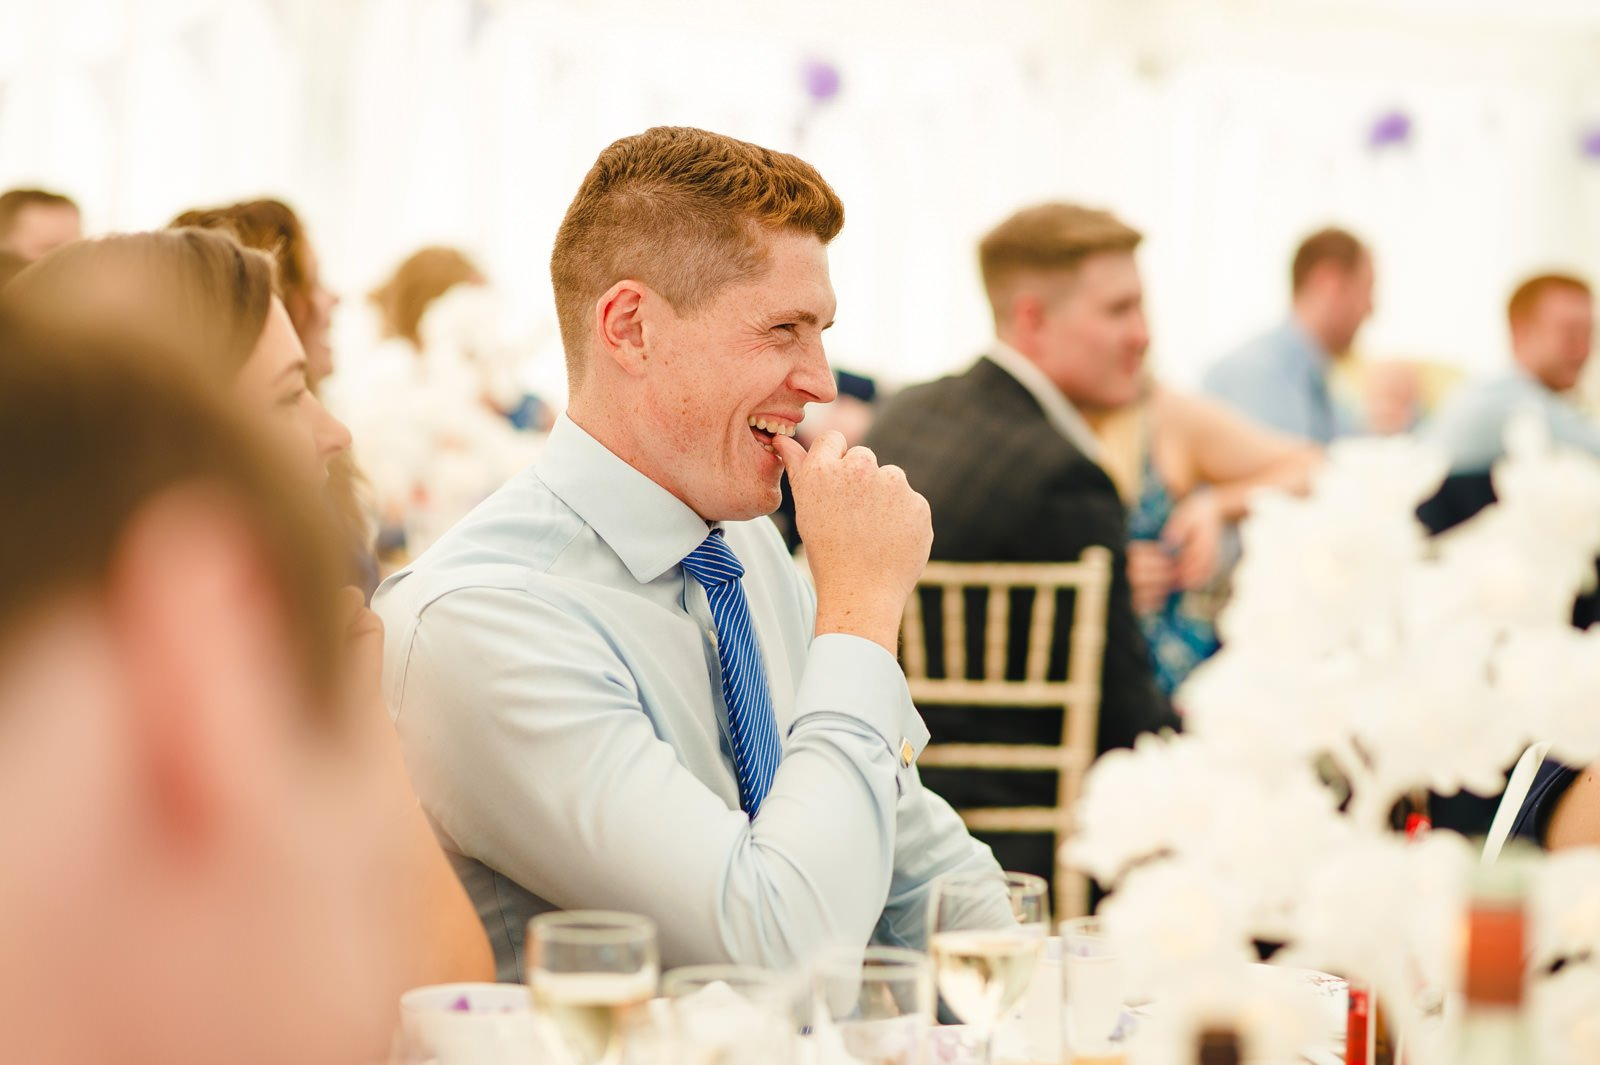 millers of netley wedding 85 - Millers Of Netley wedding, Dorrington, Shrewsbury | Emma + Ben